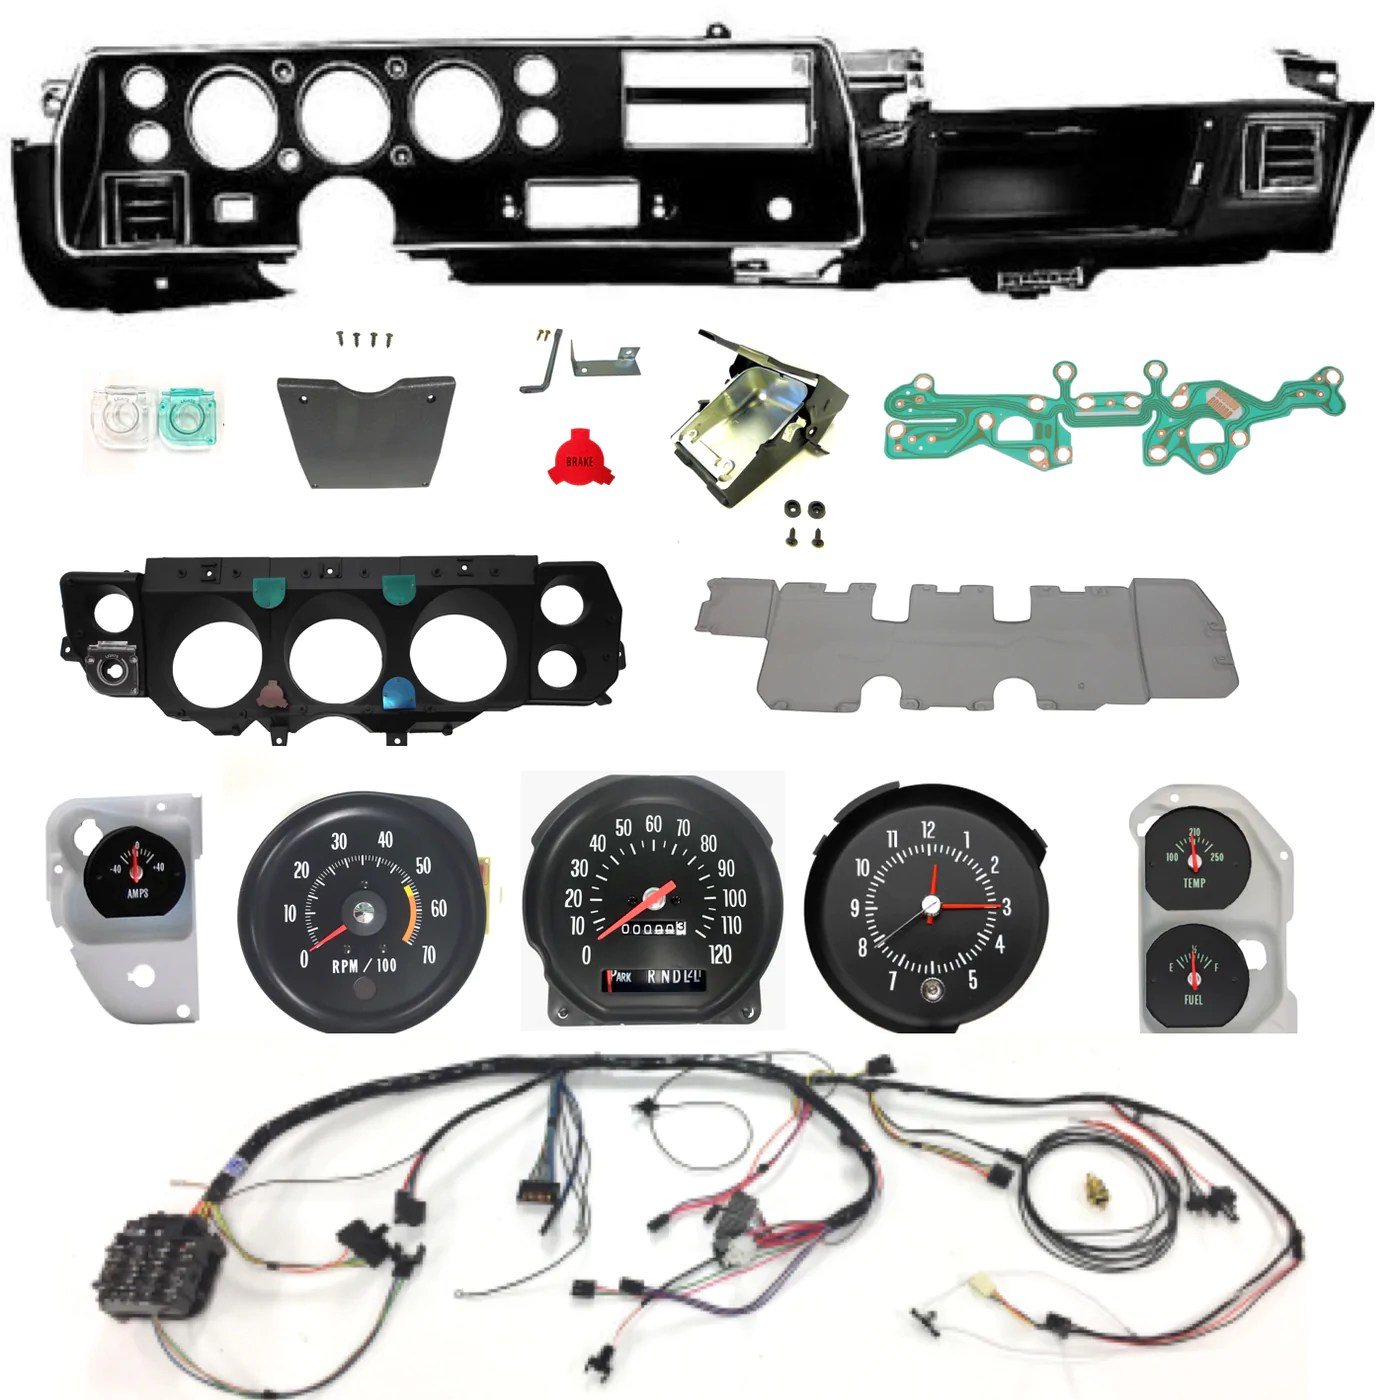 1971 71 chevelle ss dash conversion kit el camino column shift super chevelle dash wiring harness main for cars with factory gauges 1970 [ 1400 x 1400 Pixel ]